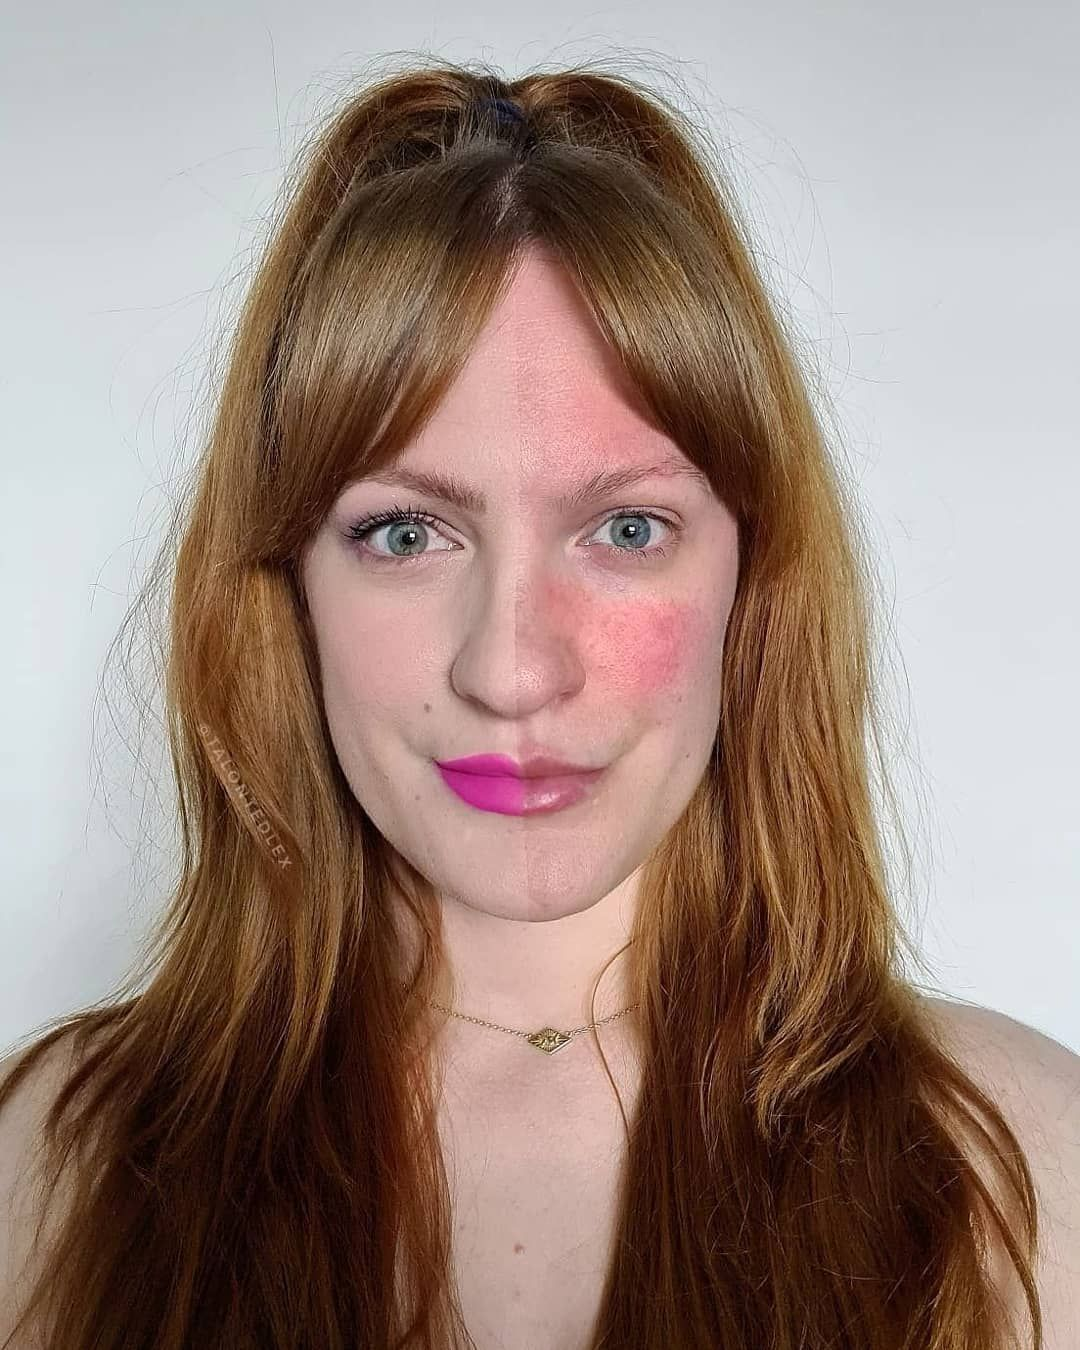 11 Things People Living With Rosacea Want You To Know Rosacea Makeup Rosacea Rosacea Treatment